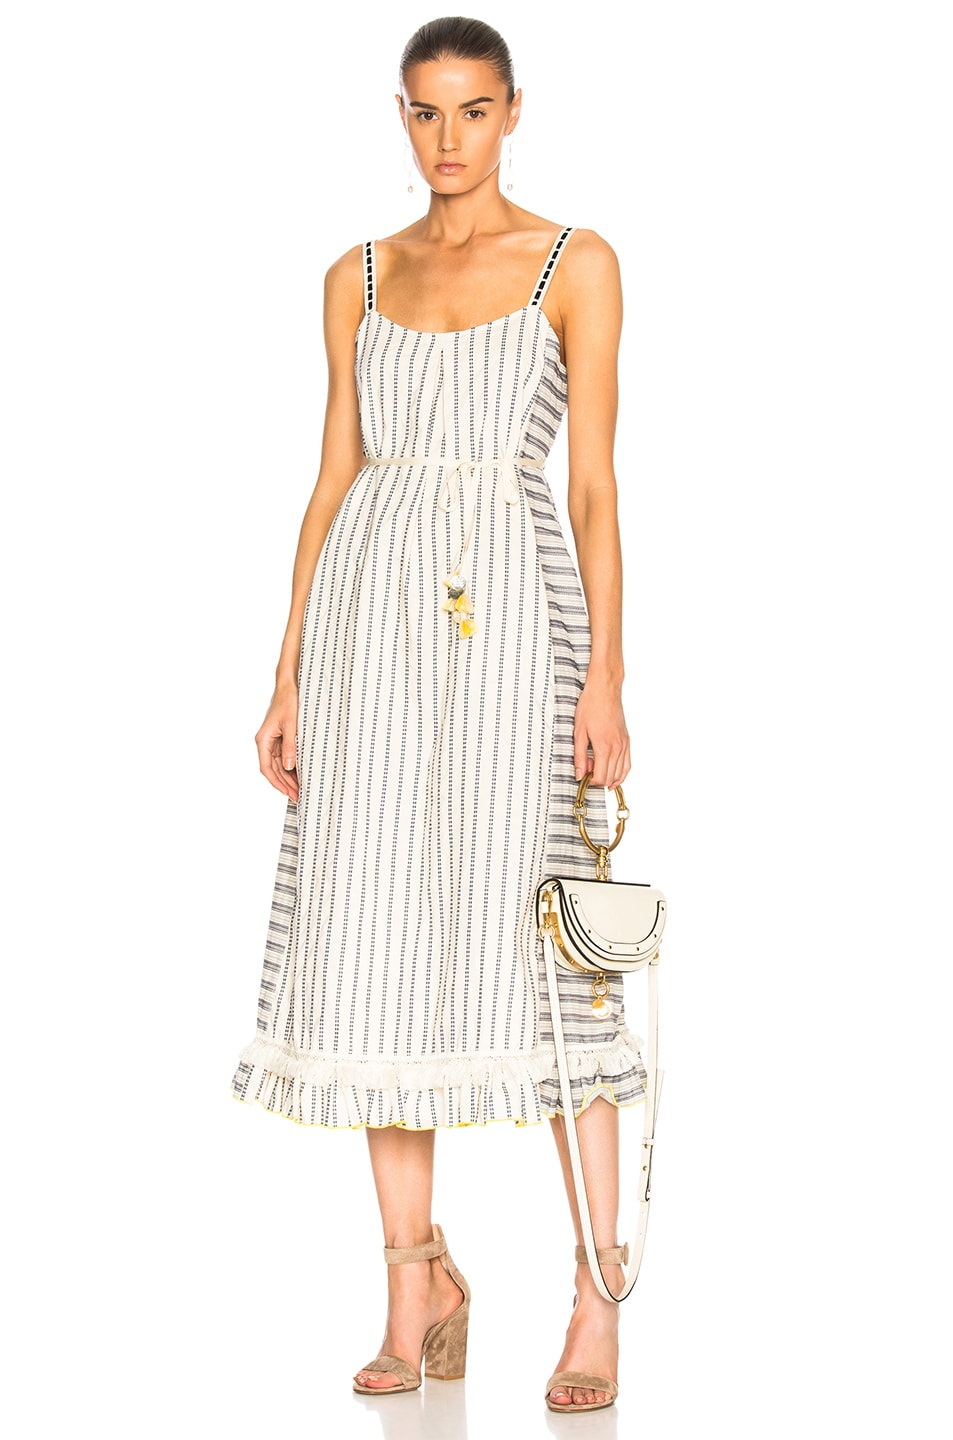 Lemlem Ami Fringe Maxi Dress in Blue,Geometric Print,Neutrals,Stripes